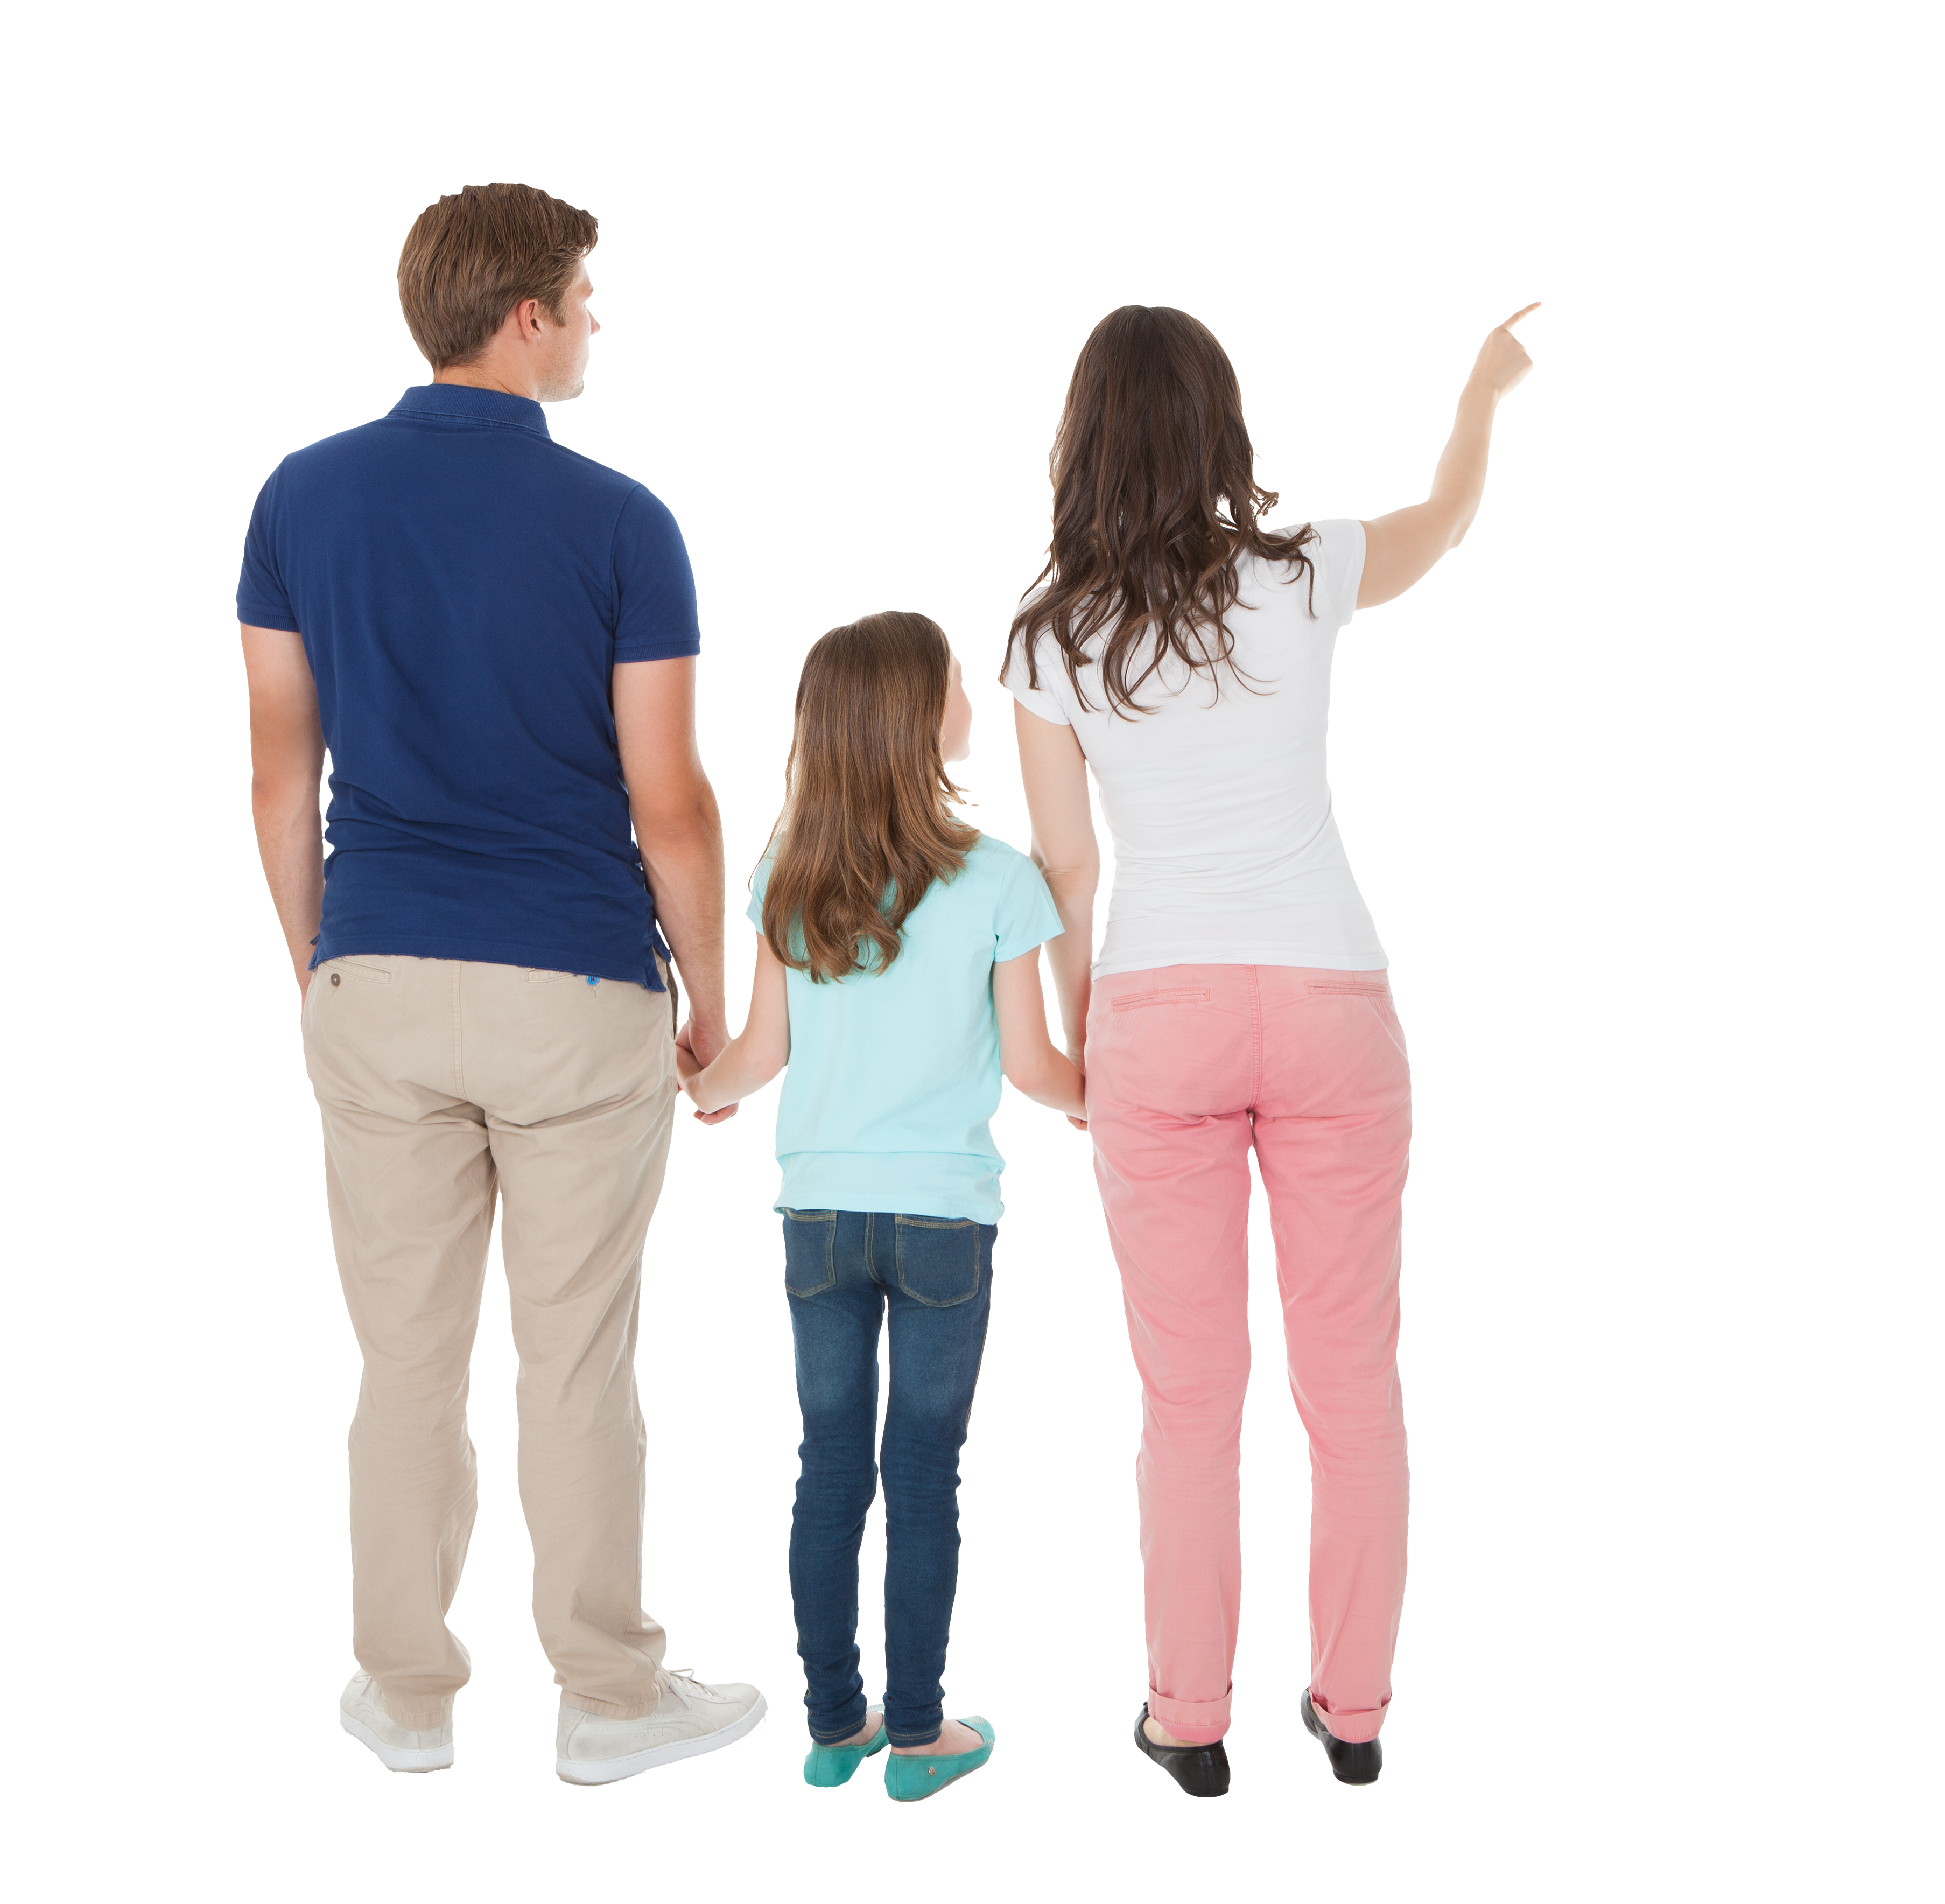 Family Png image #40048